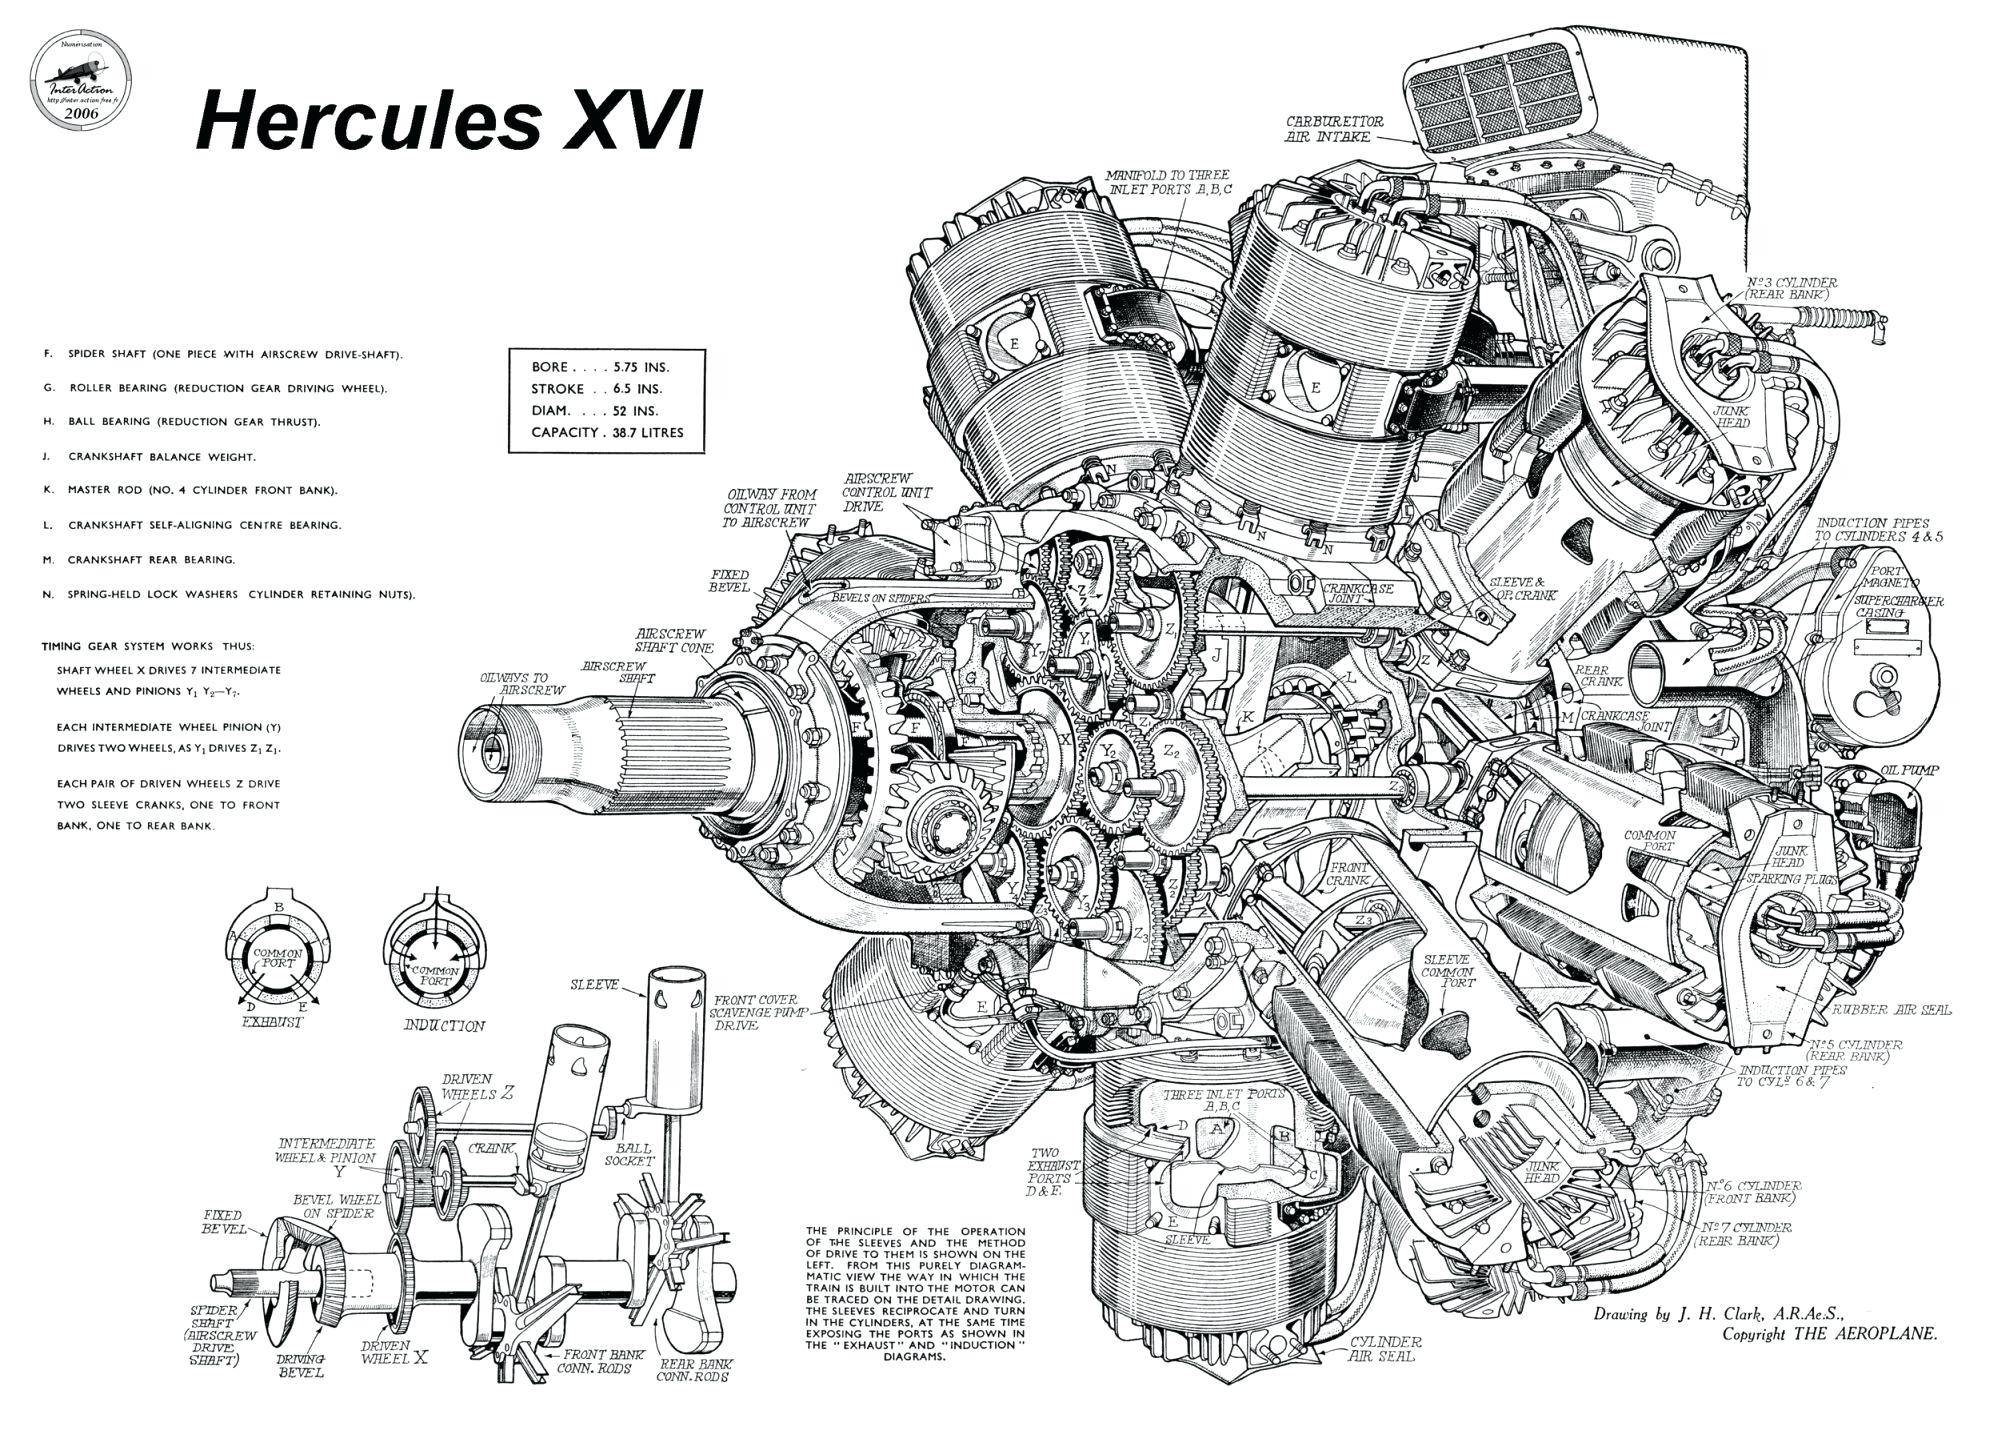 Tecumseh 6 5 Hp Engine Diagram My Wiring Carburetor Full Size Of 5hp Repair Manual Parts And Fuse Box As